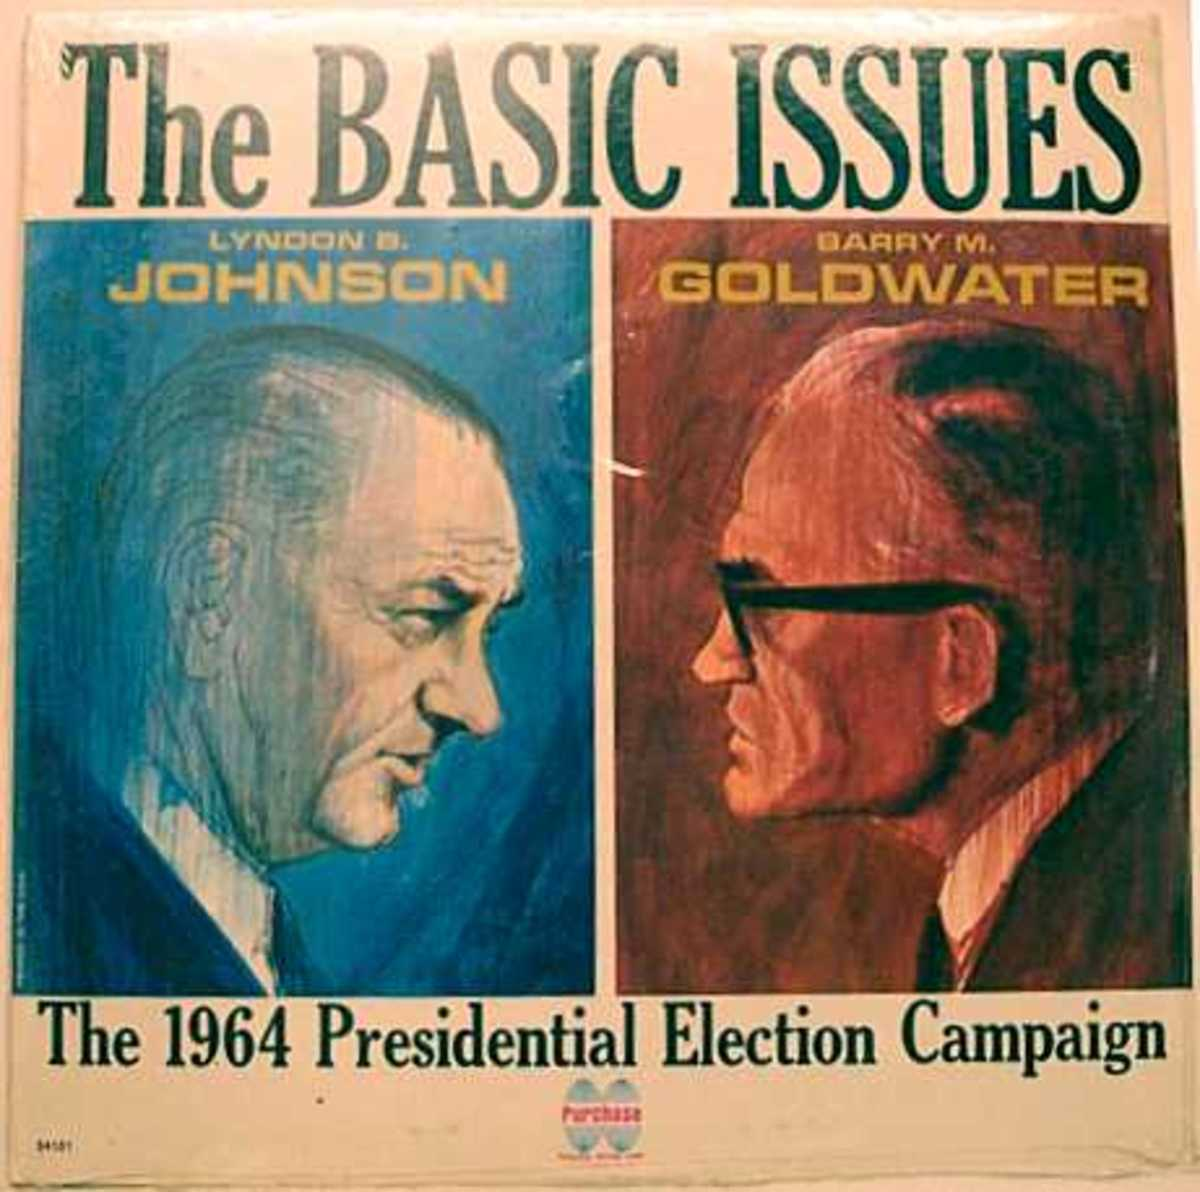 goldwater essay tips For more in-depth information about personal statements and application essays, please visit this website, which also provides additional guidelines and helpful tips for numerous scholarships, including udall, goldwater, rhodes, marshall, truman, mitchell, and gates cambridge.